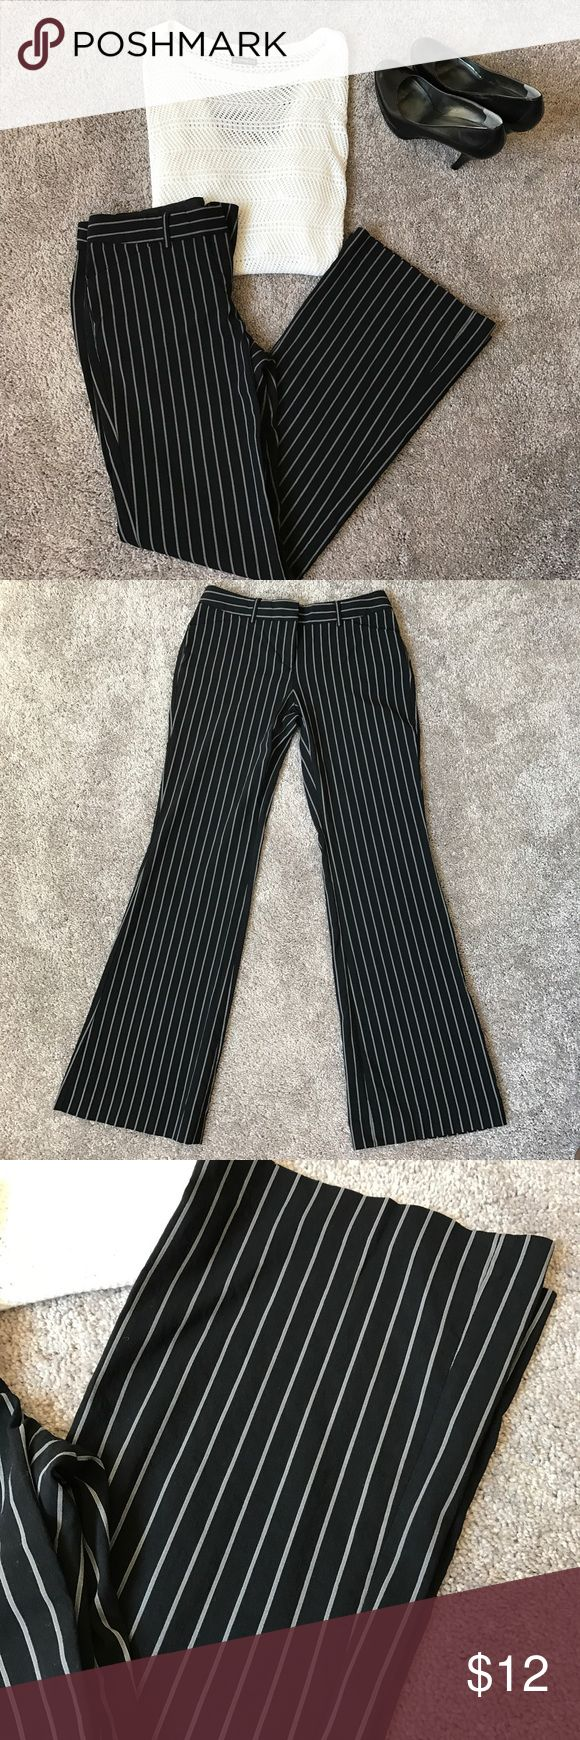 Black and White Pin Stripped Pants Express Editor Style Black and White Pin Stripped Pants. Great Condition! Perfect for work in the fall!   Inseam is 31 inches Express Pants Boot Cut & Flare